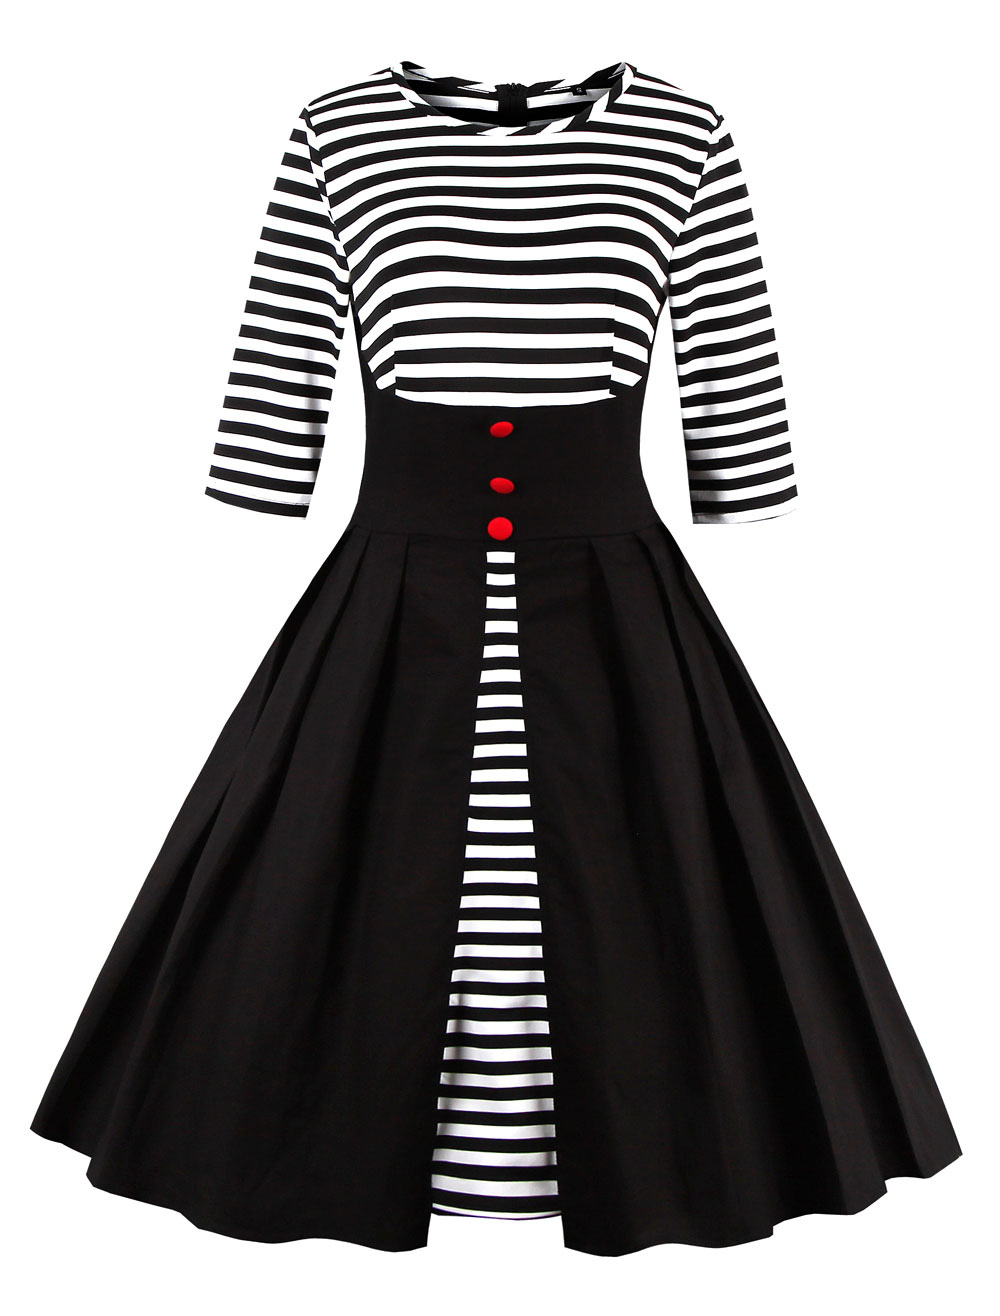 Buy Black Vintage Dress Round Neck 3/4 Length Sleeve Striped Cotton Slim Fit Pleated Flare Dress for $30.19 in Milanoo store